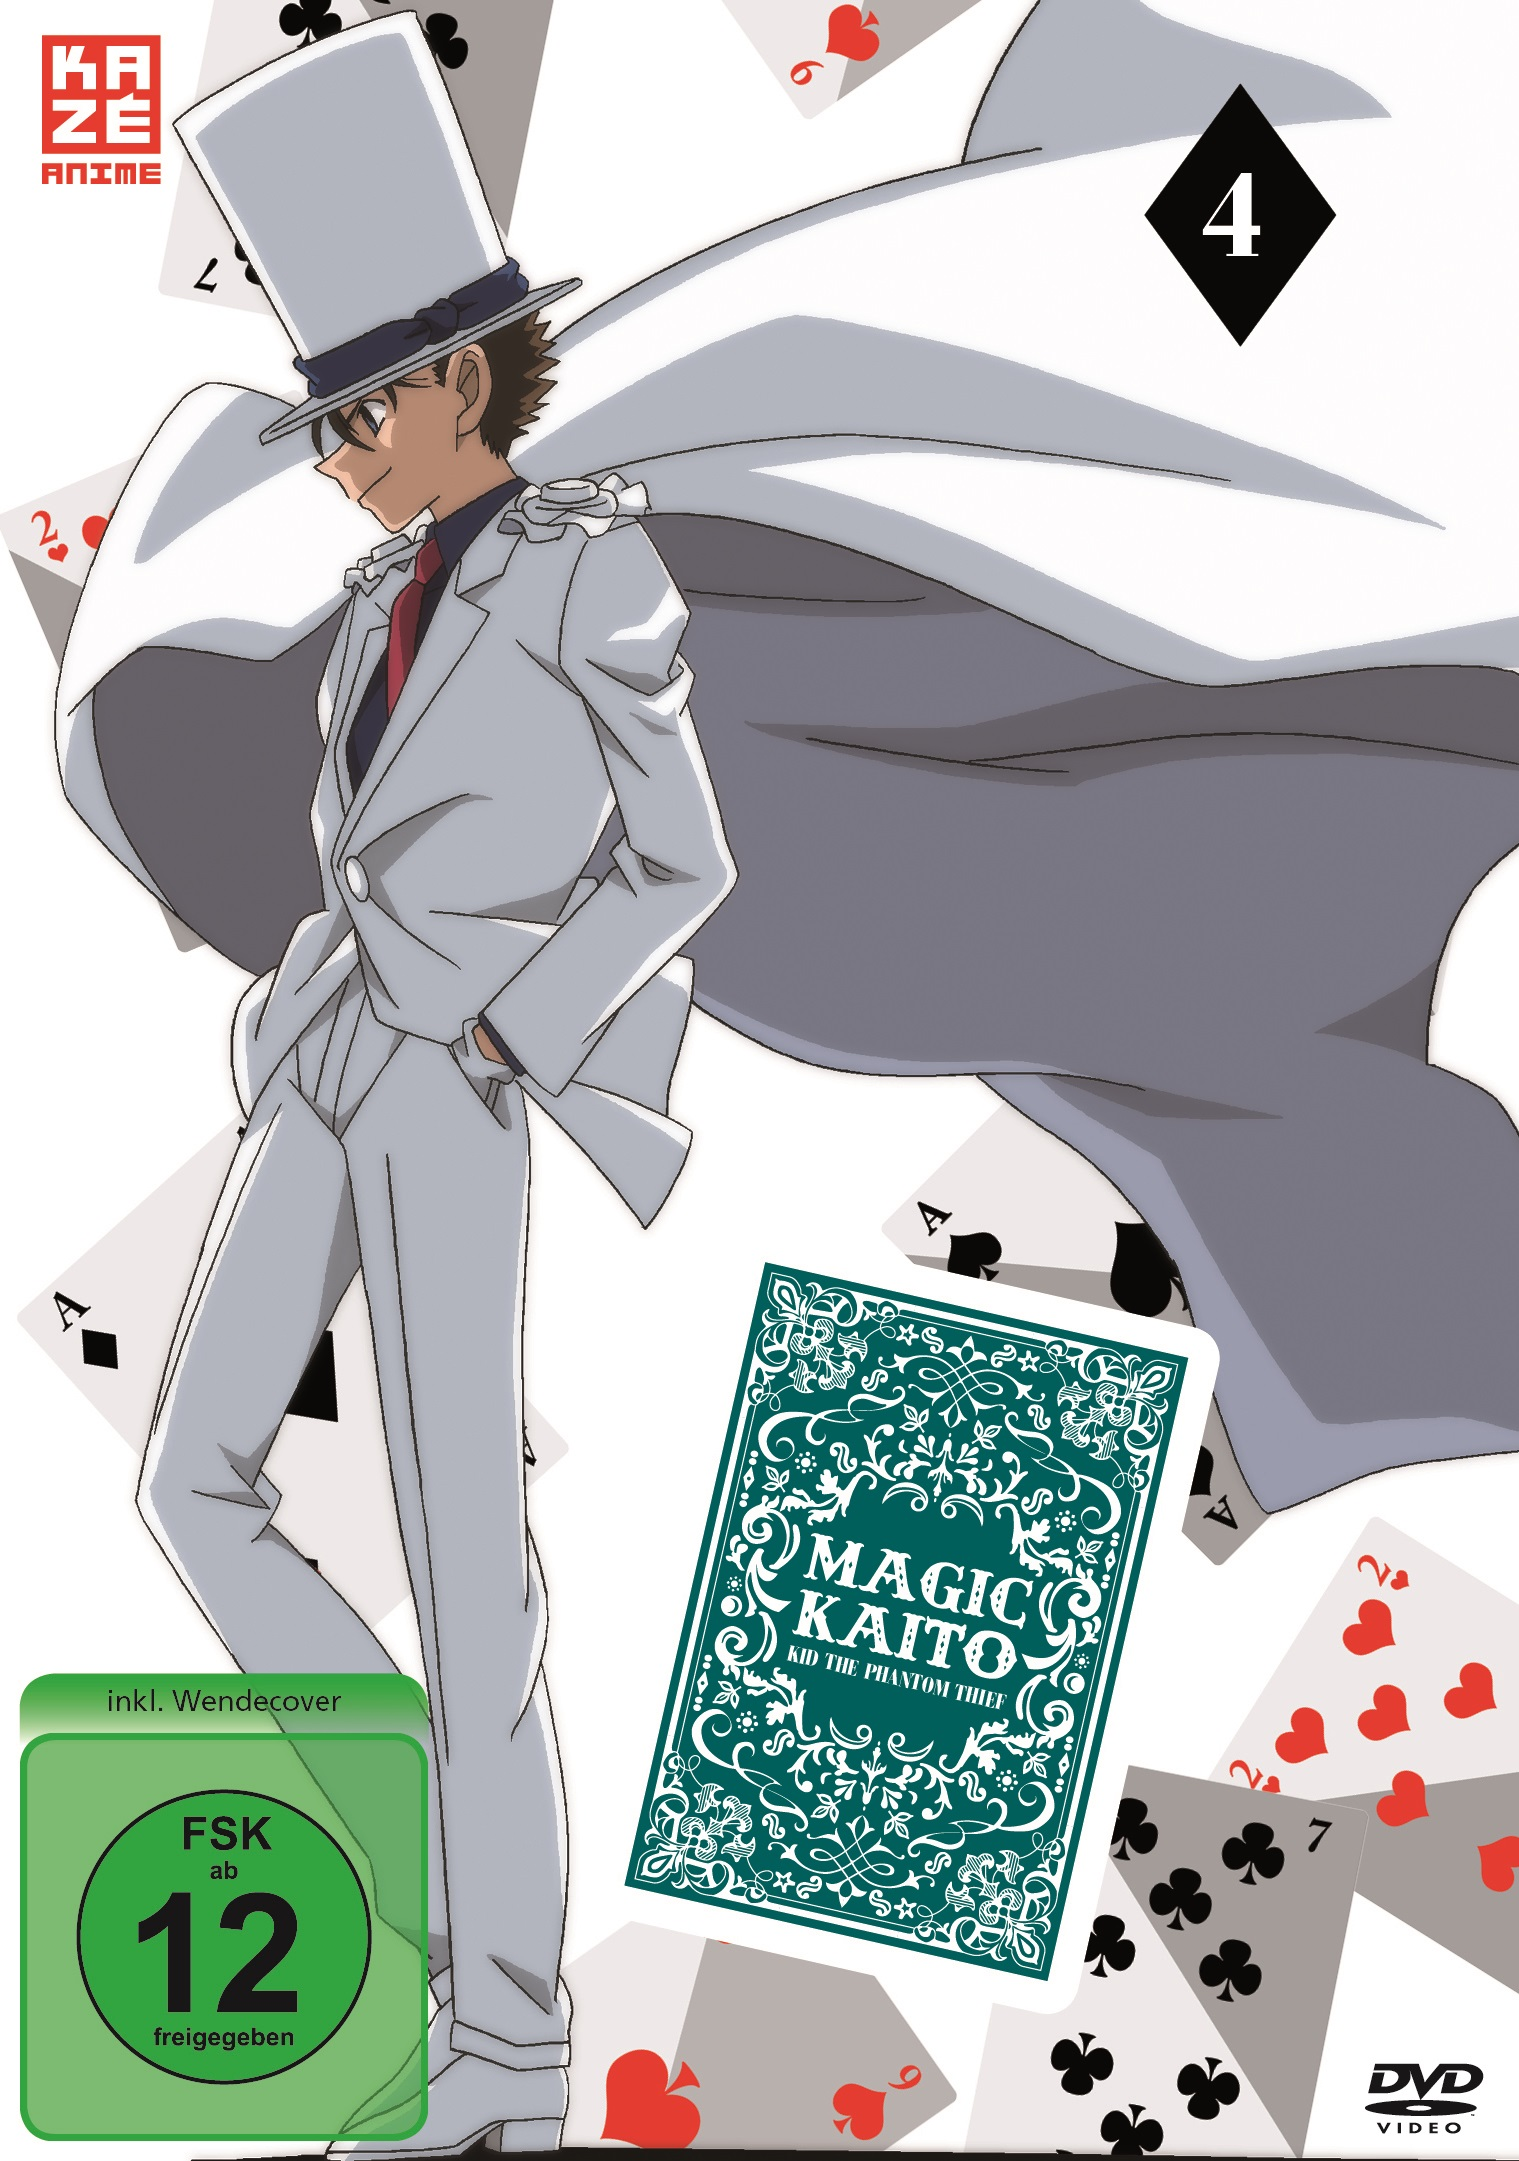 Magic Kaito Kid the Phantom Thief DVD Vol 4